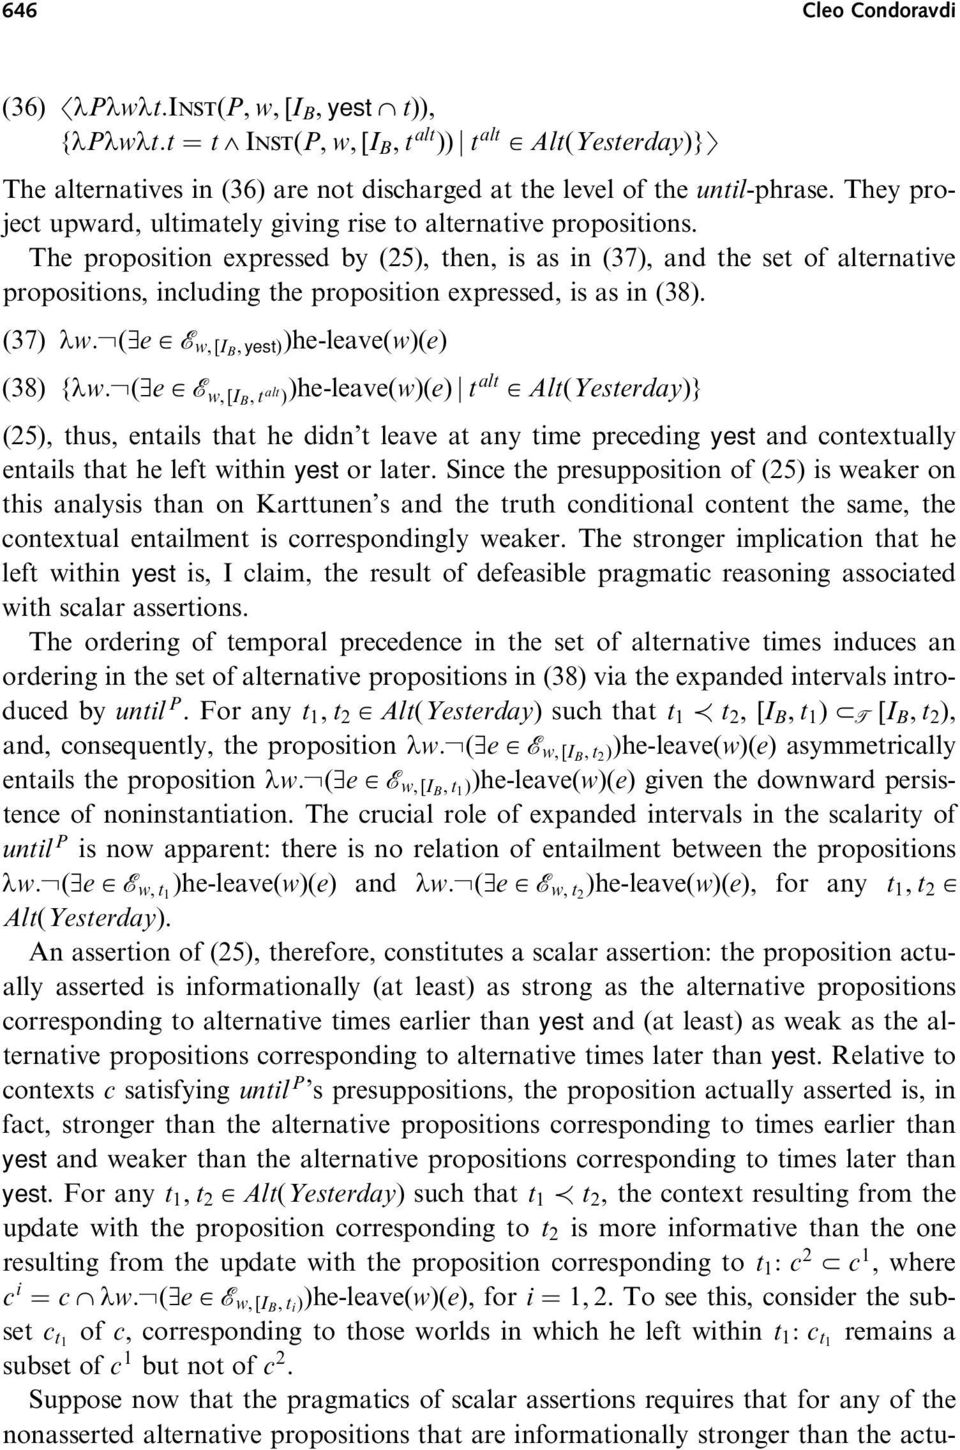 The proposition expressed by (25), then, is as in (37), and the set of alternative propositions, including the proposition expressed, is as in (38).